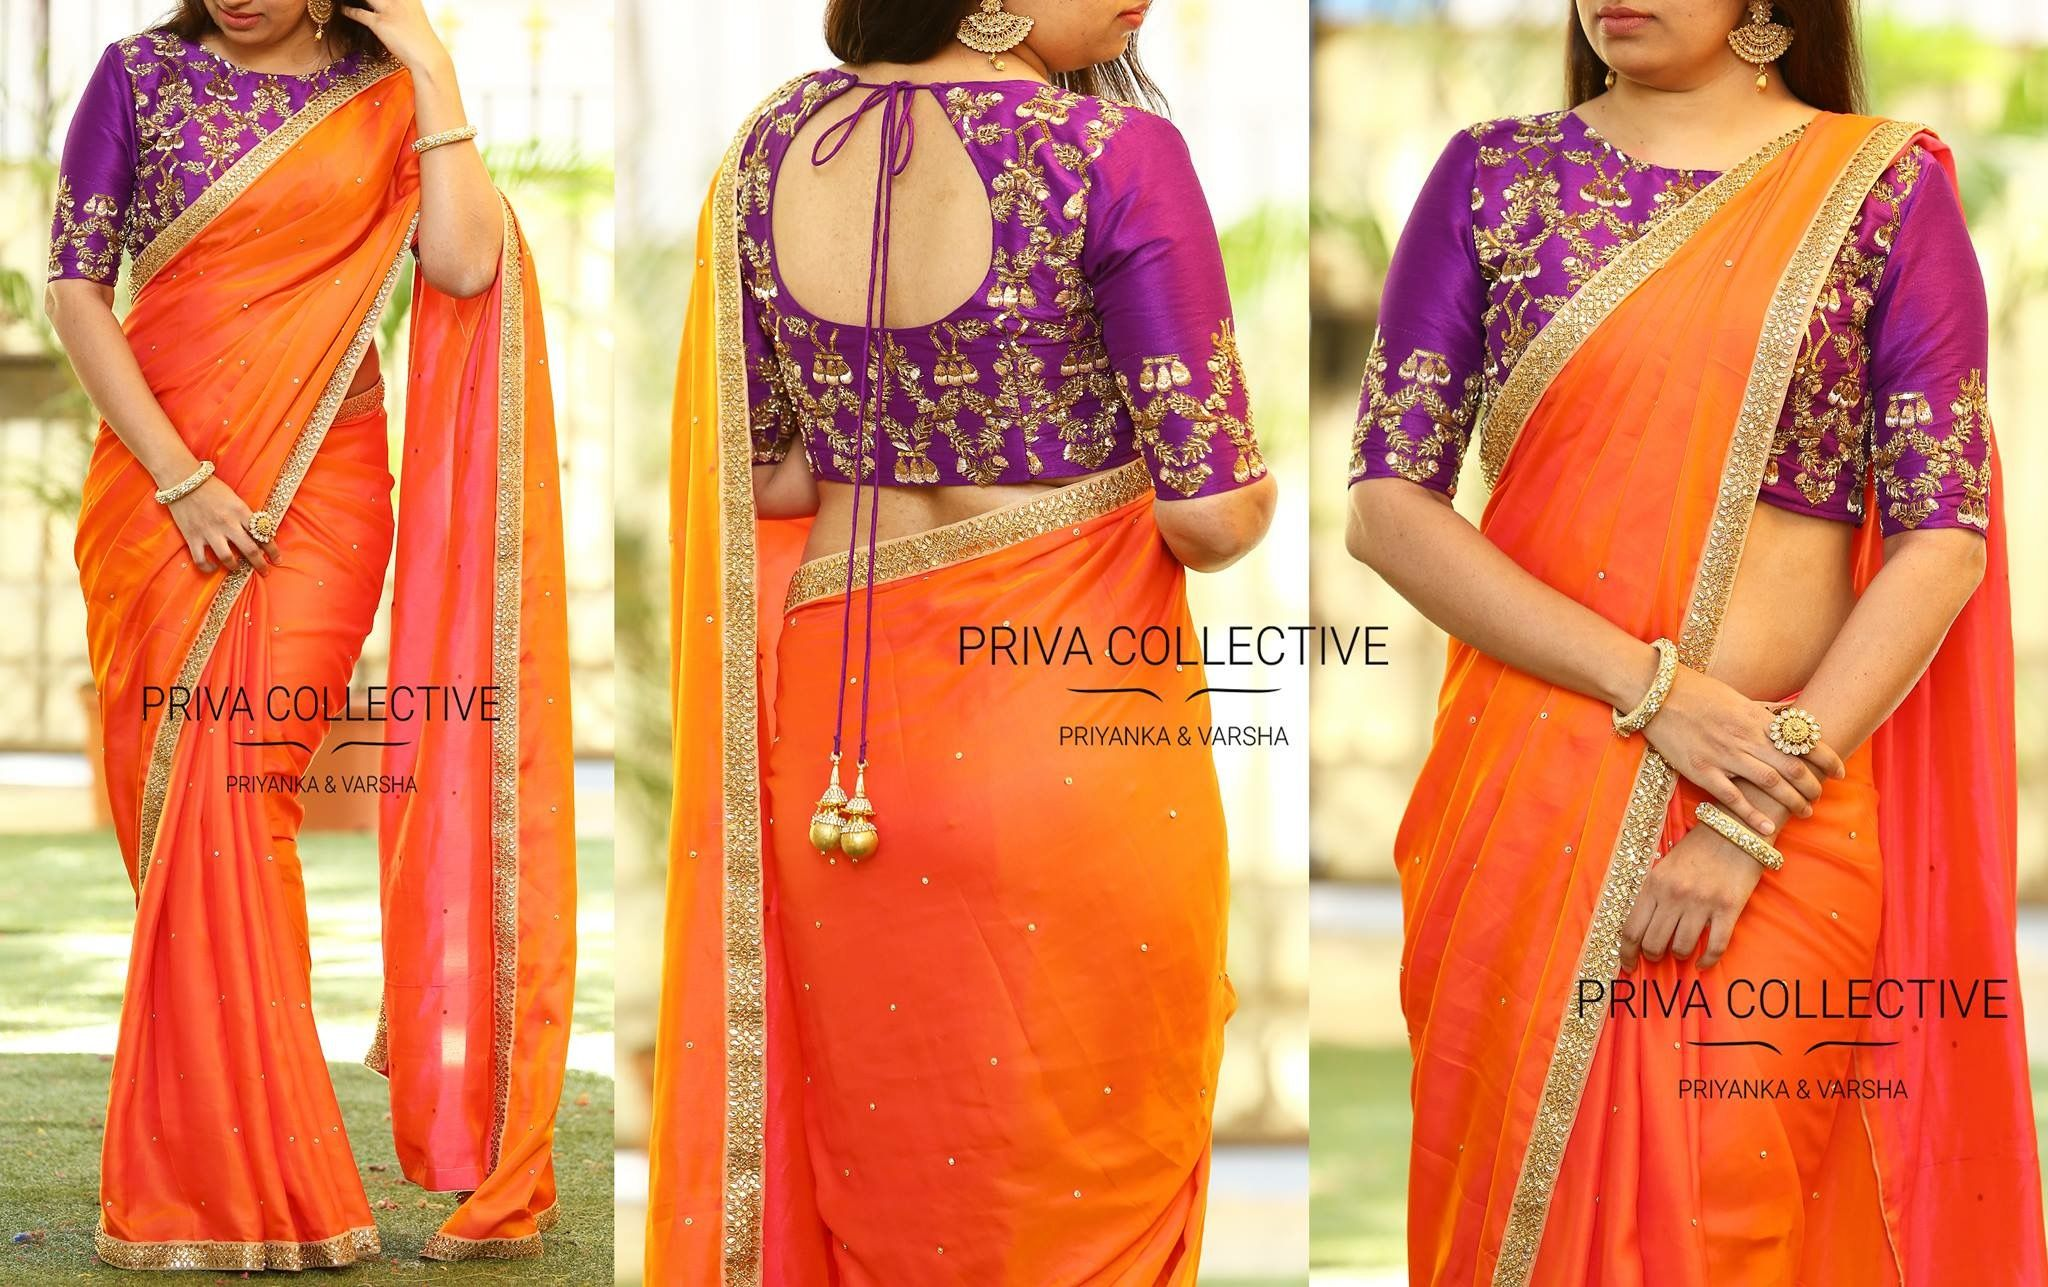 Pin By Spandana Reddy Sappidi On Indian Wear Plain Saree With Heavy Blouse Fashionable Saree Blouse Designs Blouse Neck Designs,Lightning Bolt Design Hair